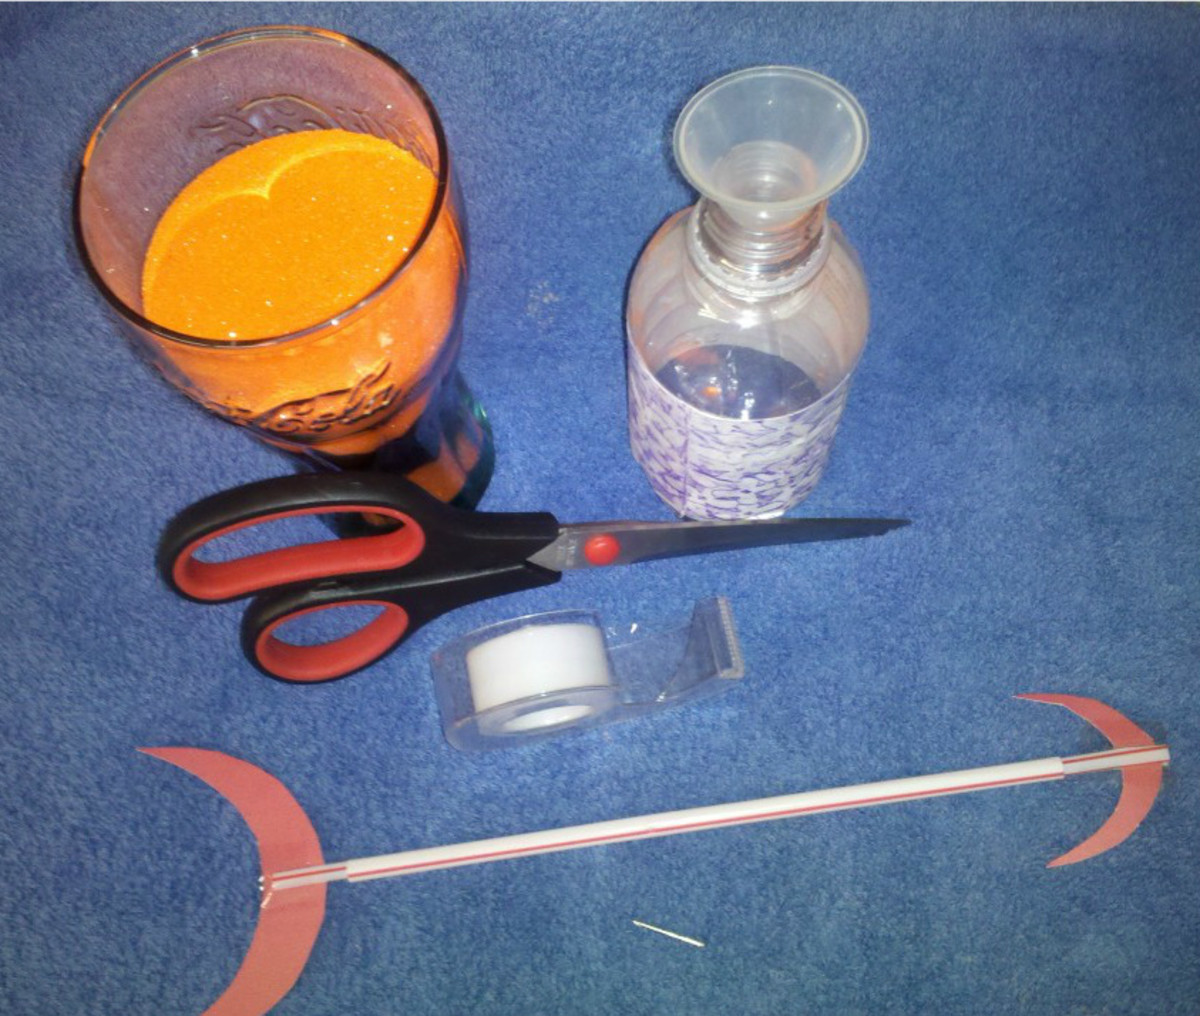 Supplies for making a wind vane